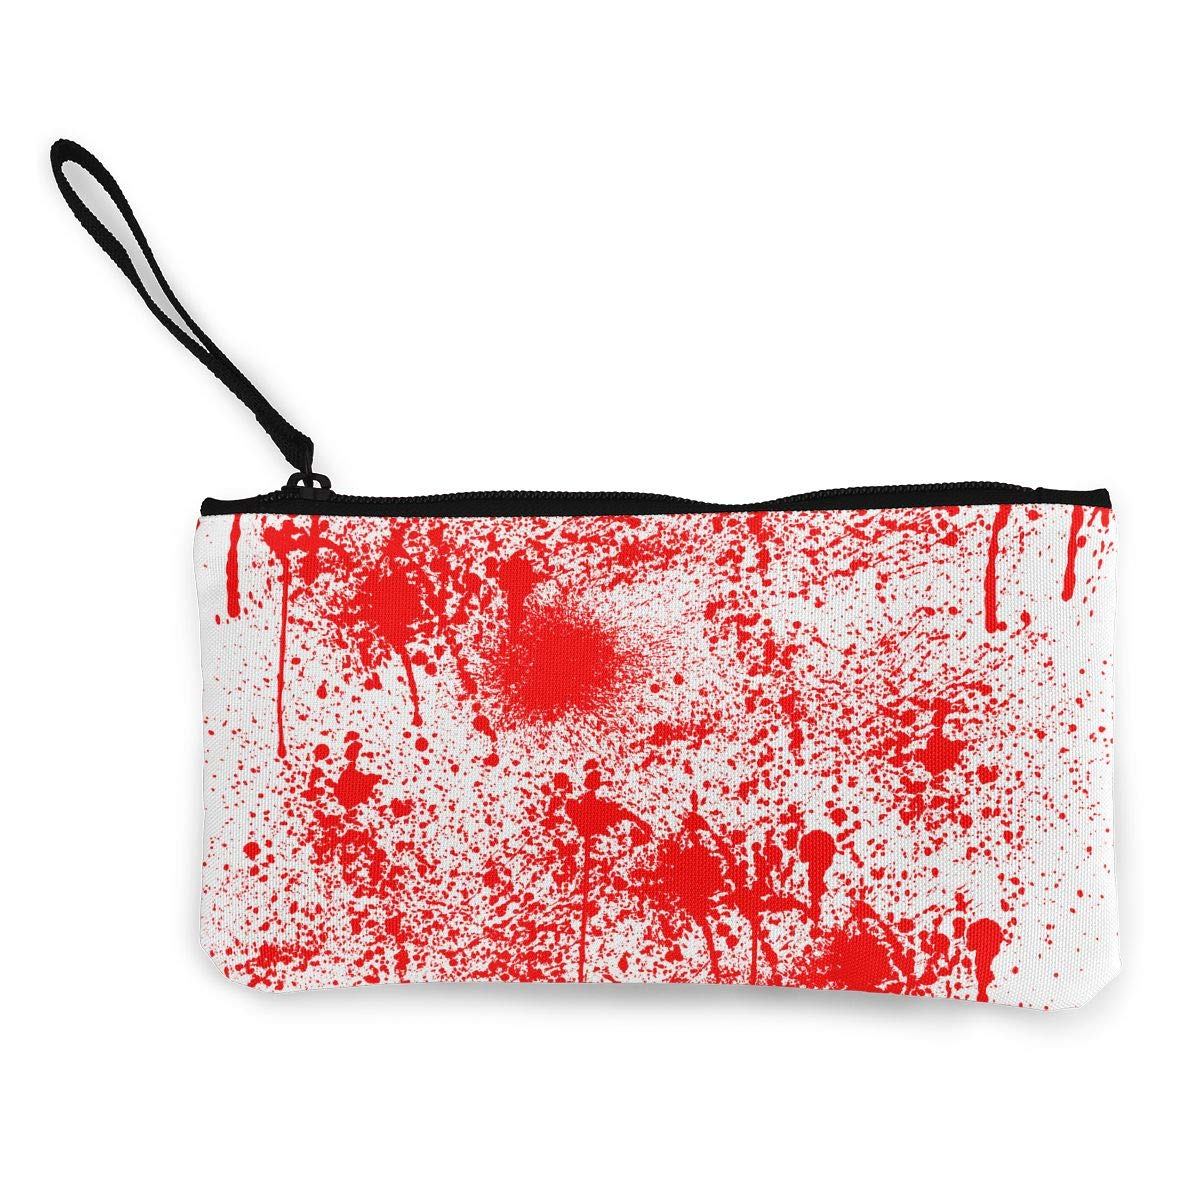 Cellphone Bag With Handle DH14hjsdDEE Splash Blood Scary Zipper Canvas Coin Purse Wallet Make Up Bag